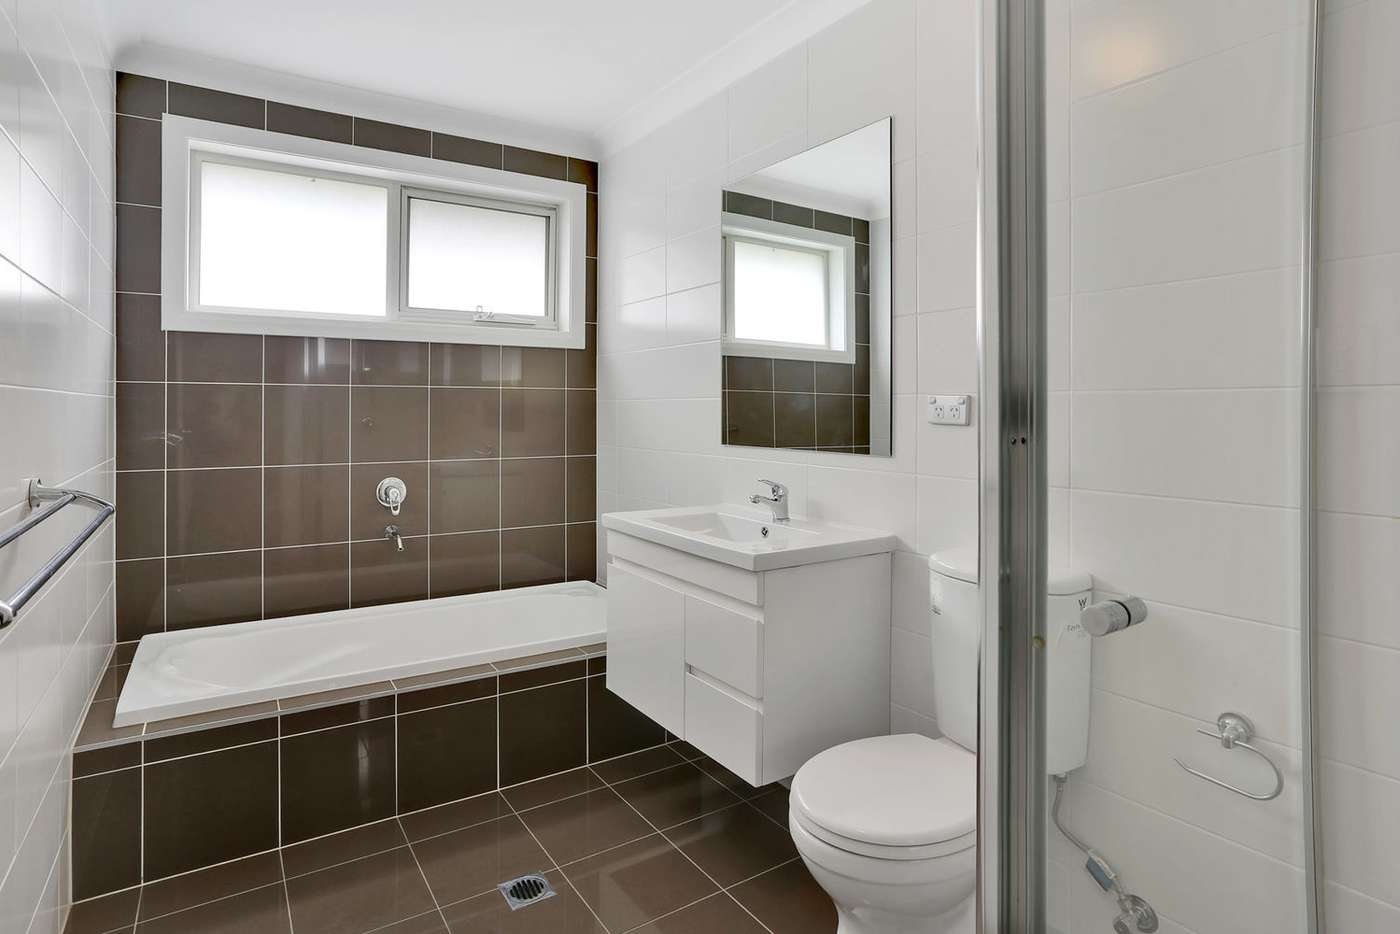 Sixth view of Homely house listing, 8 67 Burnside Street, Kellyville Ridge NSW 2155